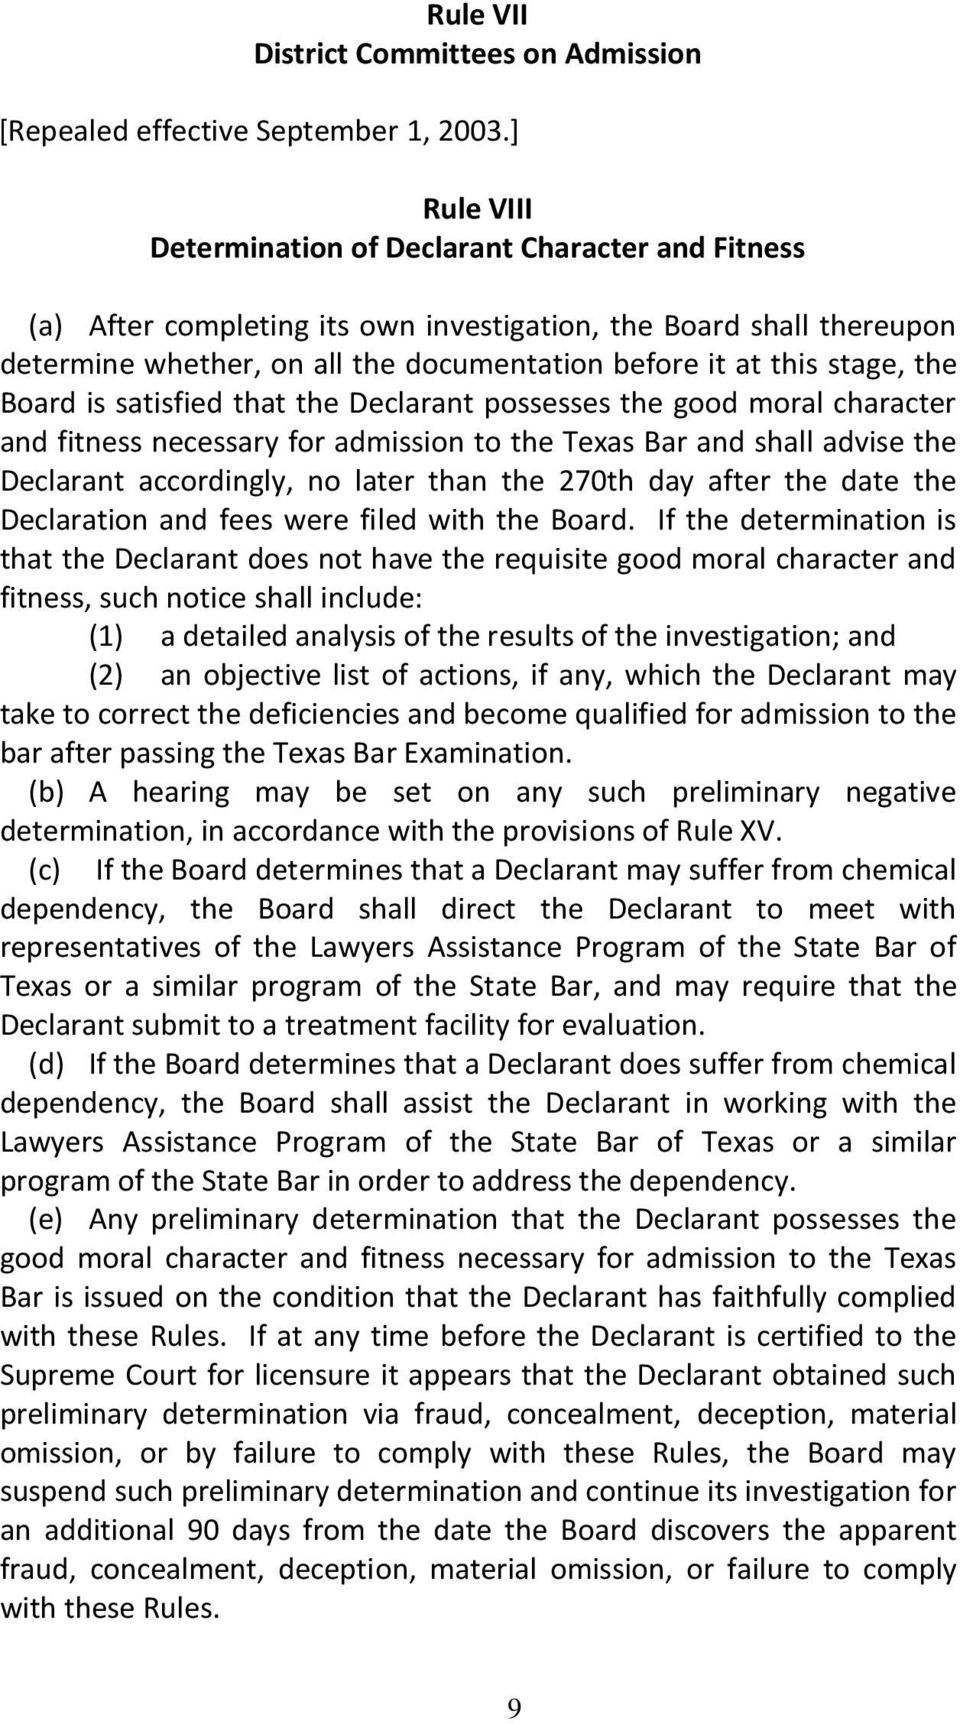 the Board is satisfied that the Declarant possesses the good moral character and fitness necessary for admission to the Texas Bar and shall advise the Declarant accordingly, no later than the 270th